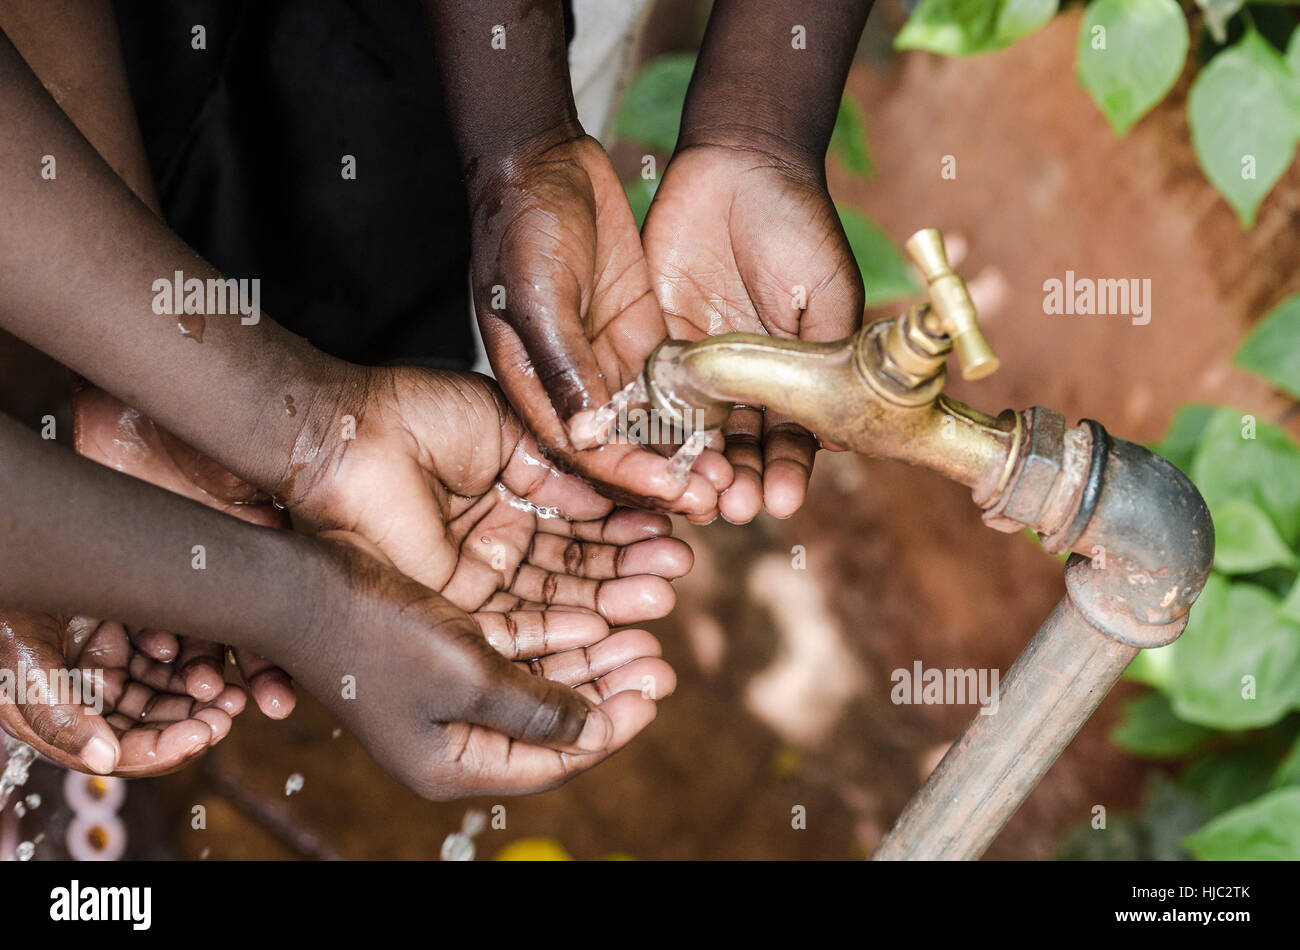 Black Baby Hands Under African Water Tap World Issue - Stock Image